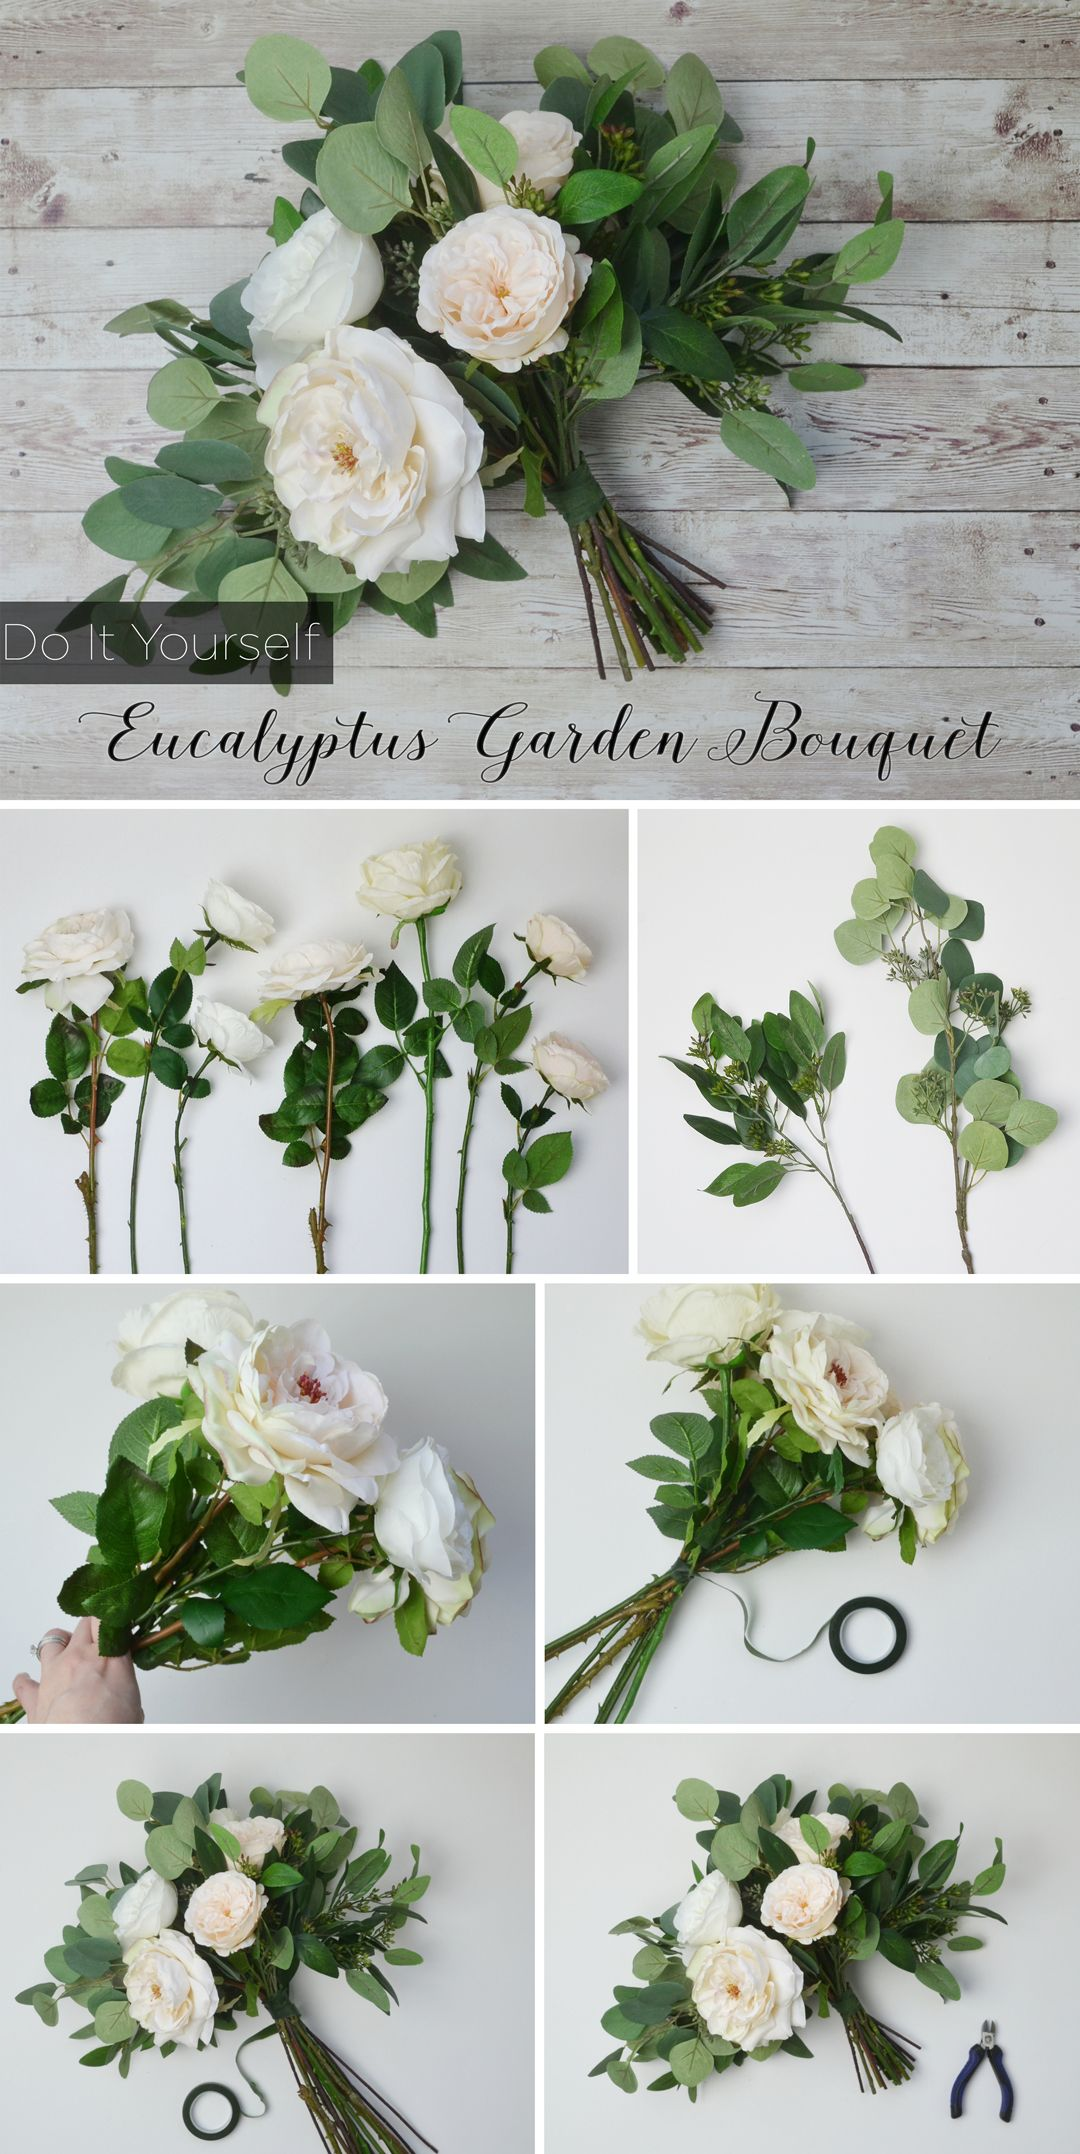 Diy eucalyptus bouquet in 2018 bridal bouquets pinterest silk get ready to make a bridal bouquet for your wedding follow this bouquet diy from silk flower designer blue orchid creations and walk down the aisle with a mightylinksfo